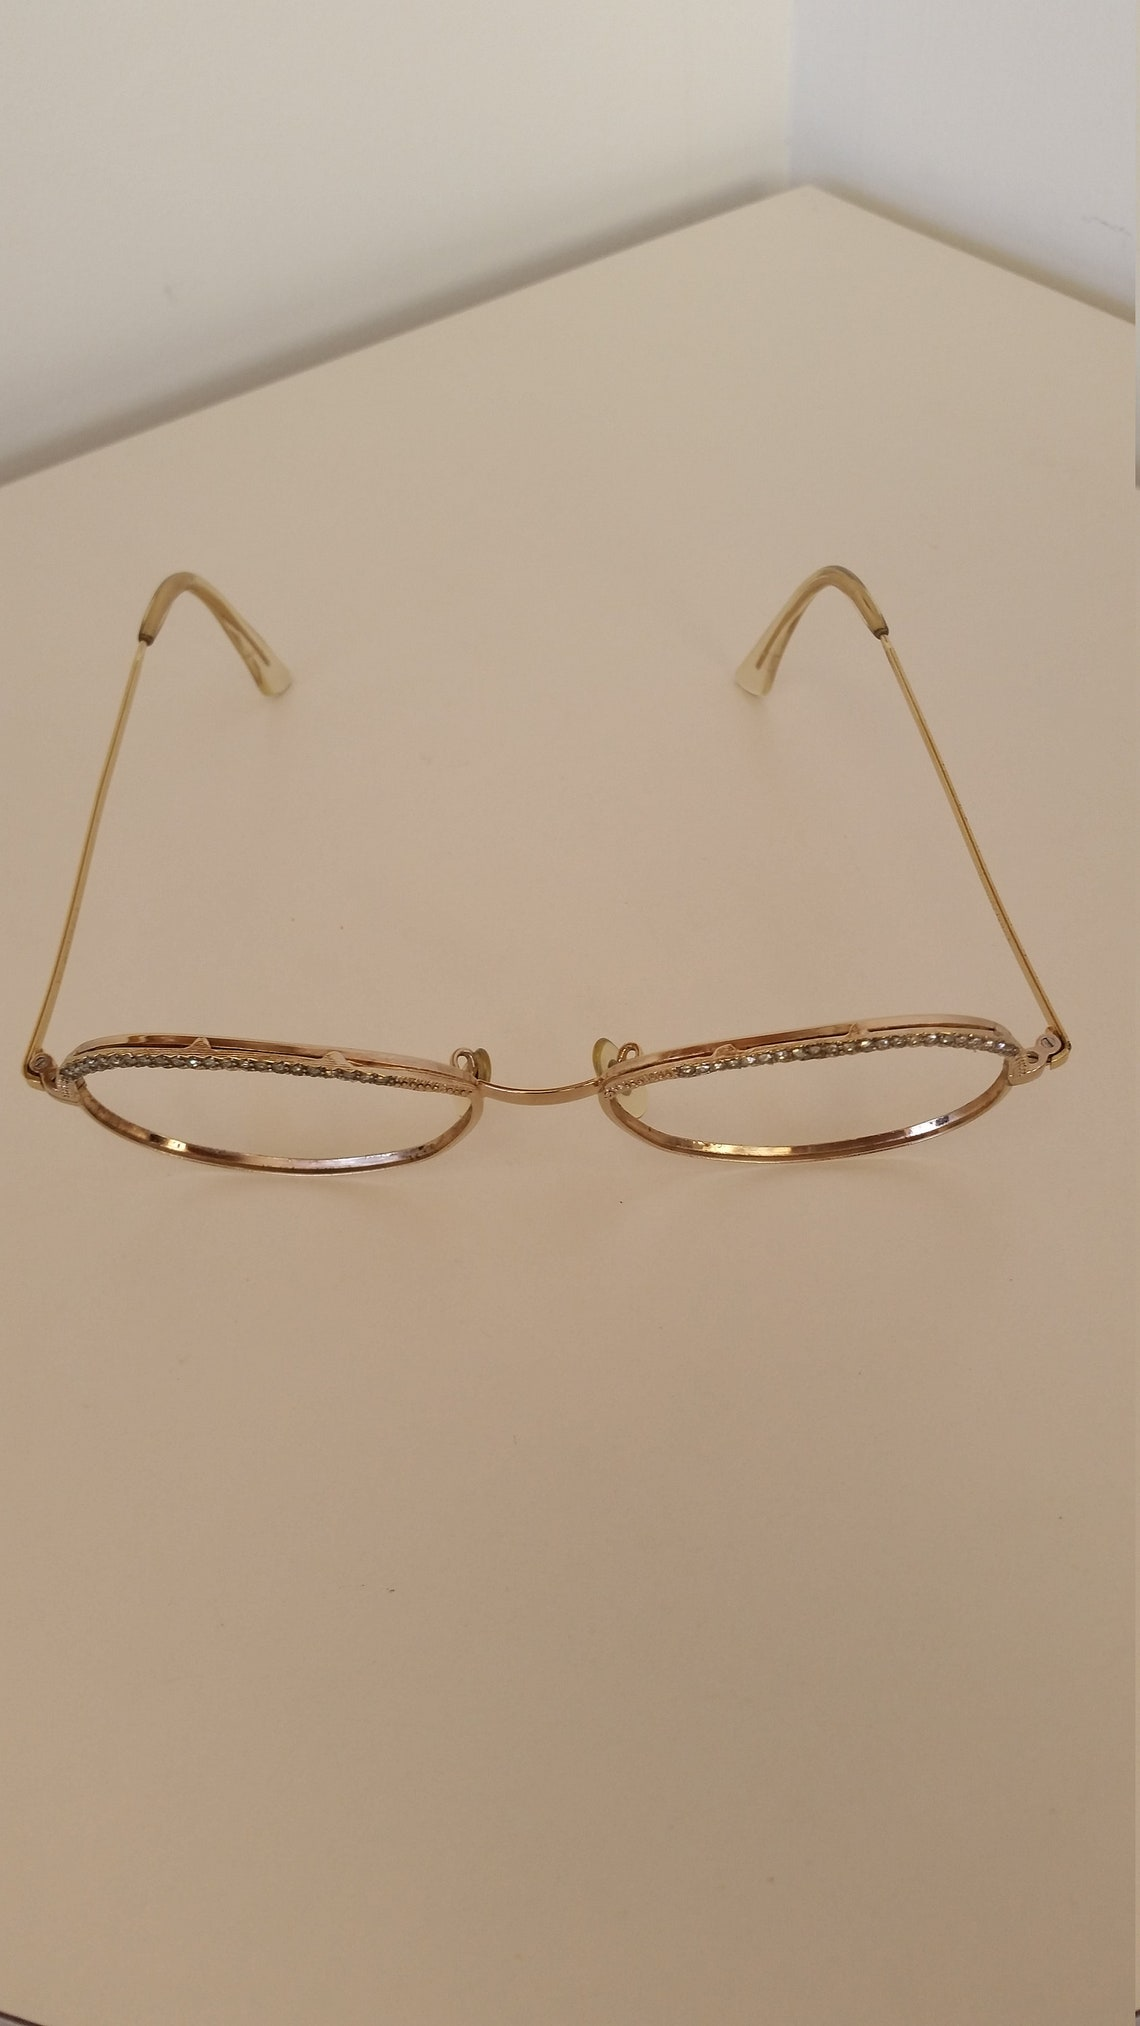 1960s Shuron Gold Tone Eyeglasses Frame w/White Crystals; Beautiful Vintage Condition; Rx-able; Add your lenses; Read Description for Size